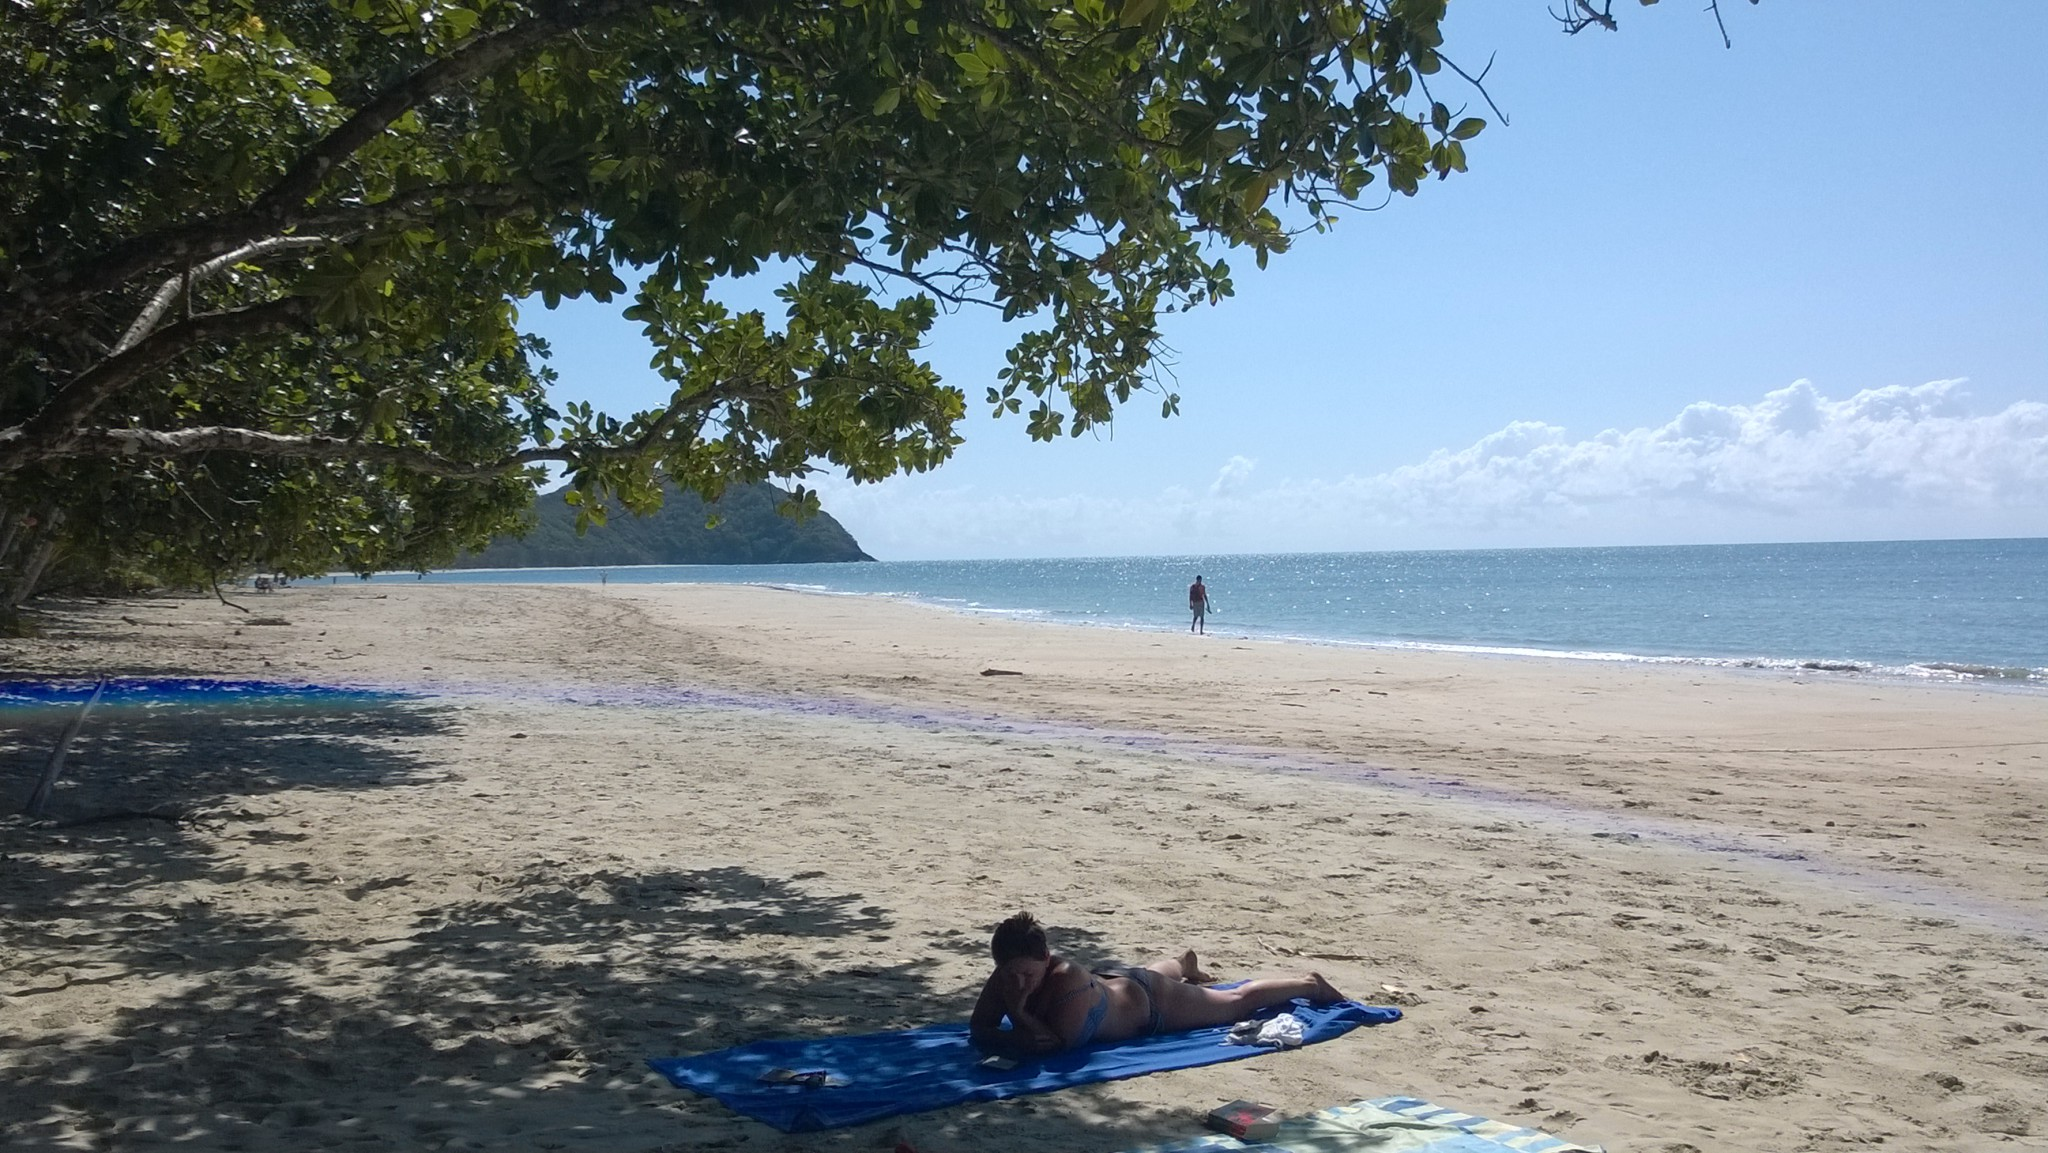 Myall Beach Cape Tribulation, Myall Beach, Cape Tribulation Camping - Routes and Trips